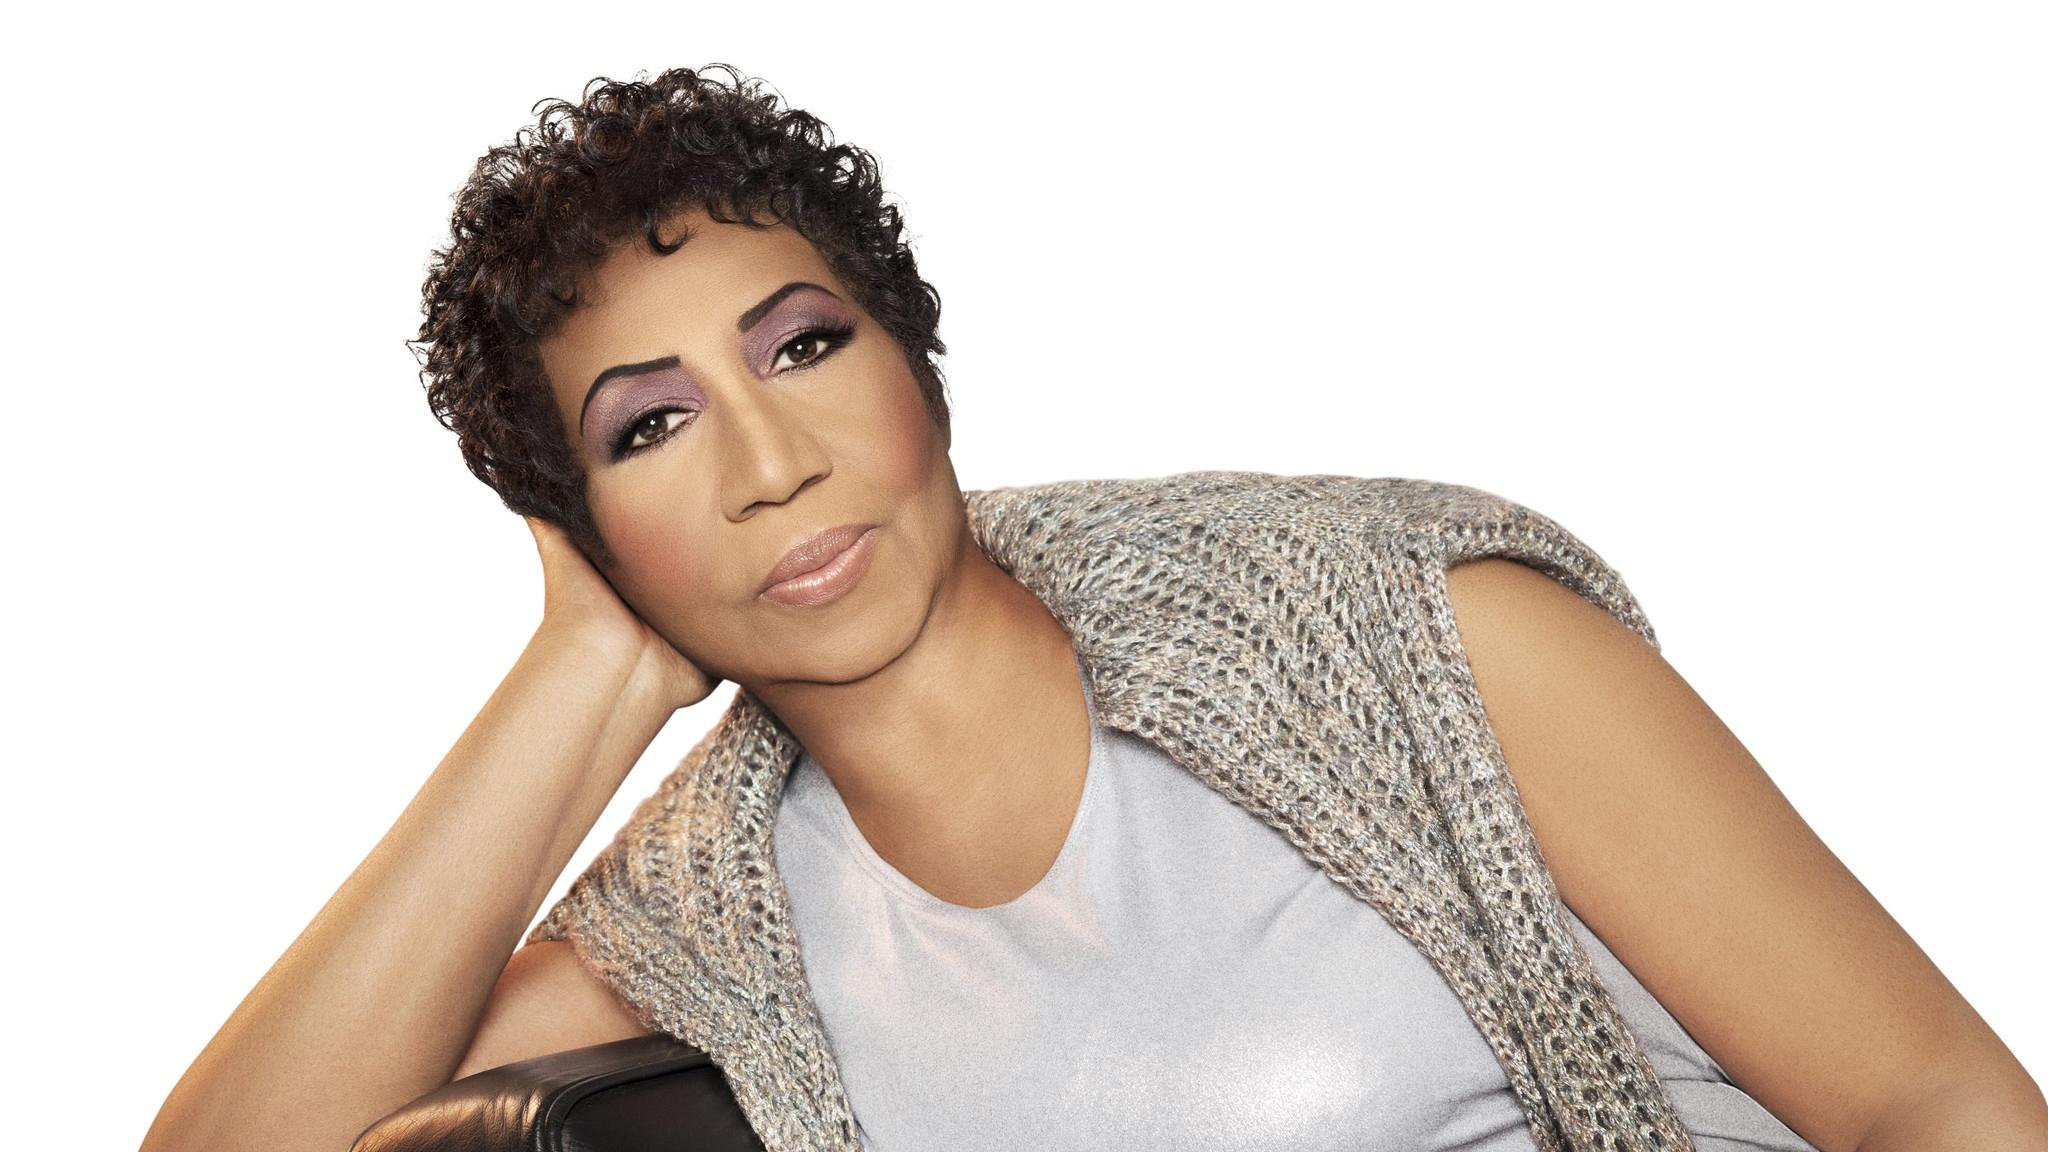 Download wallpapers 2048x1152 aretha franklin, singer, rhythm and